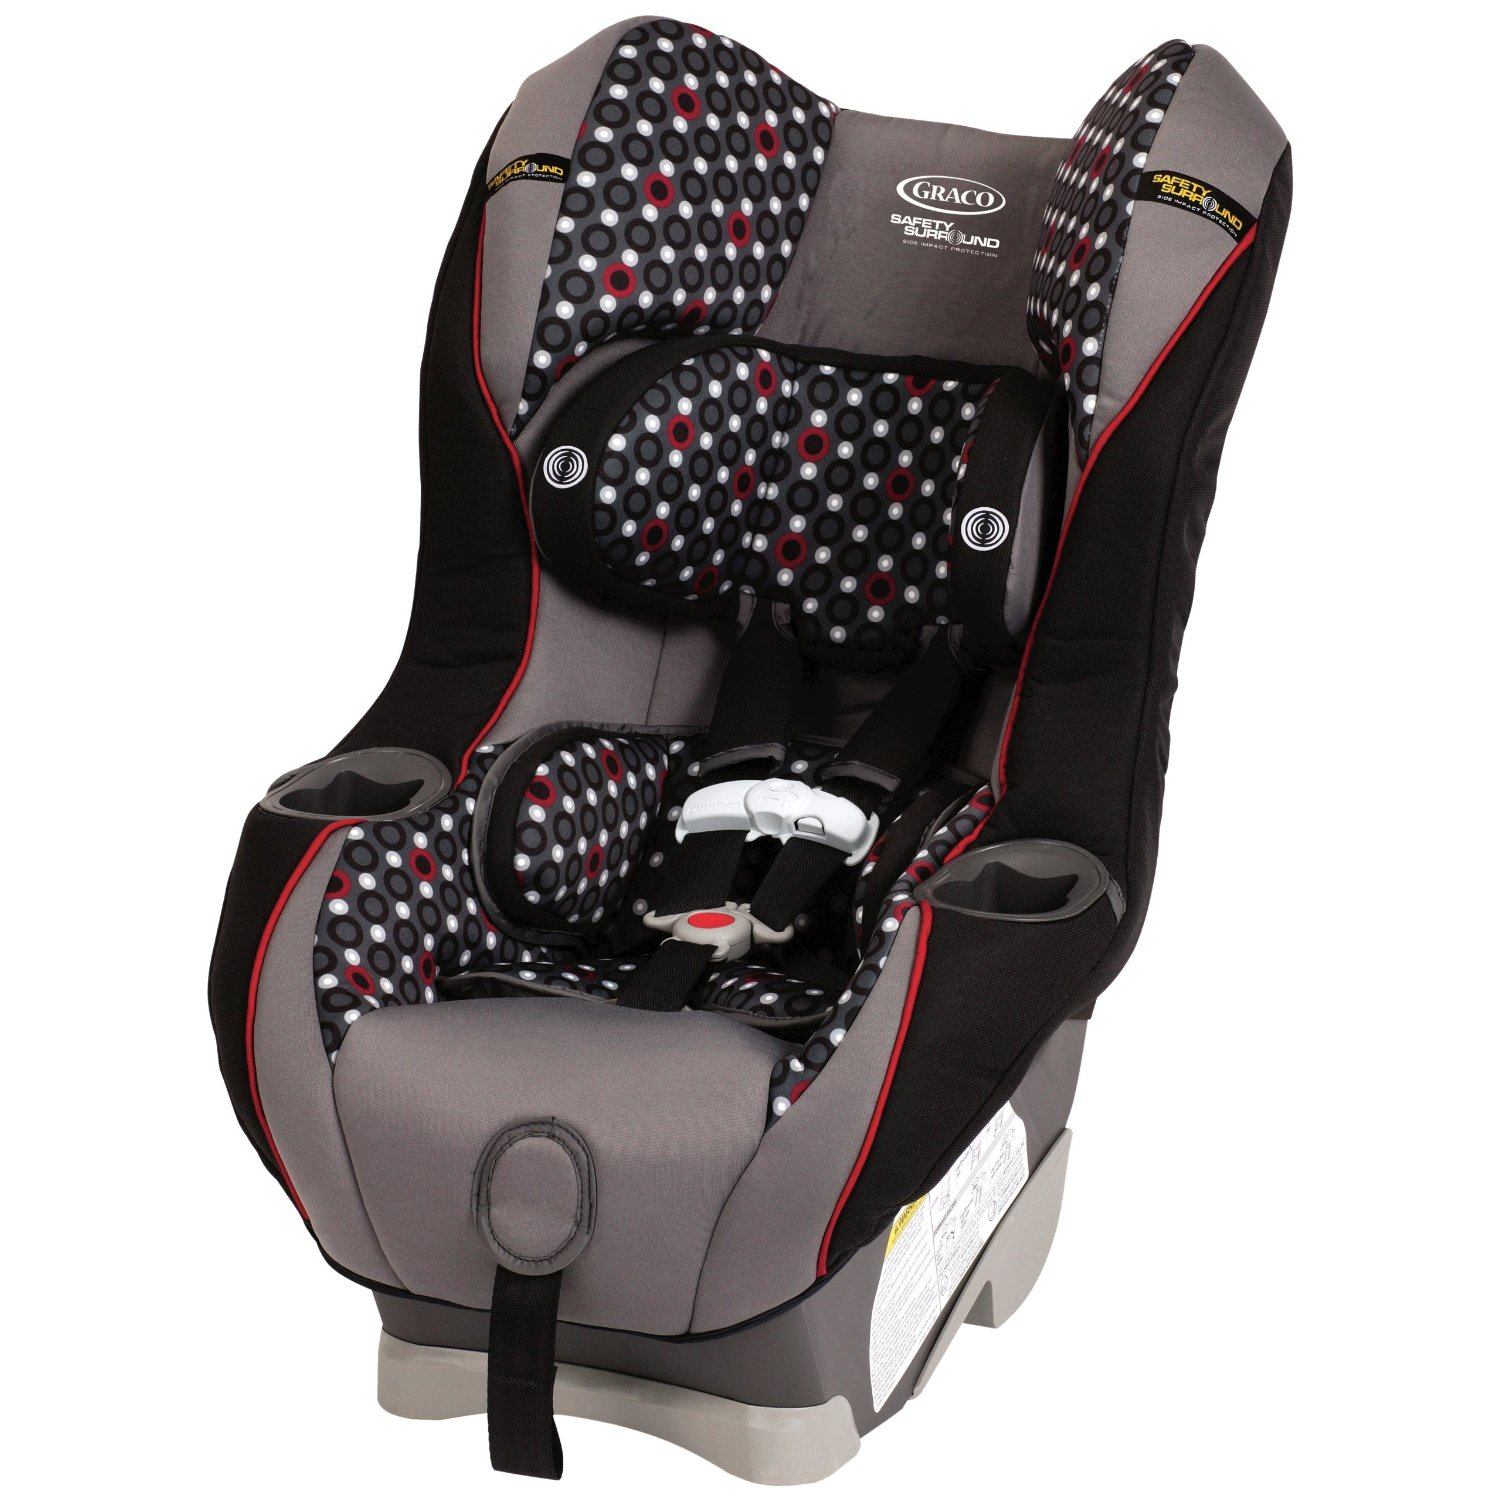 Graco My Ride Convertible Car Seat Reviews